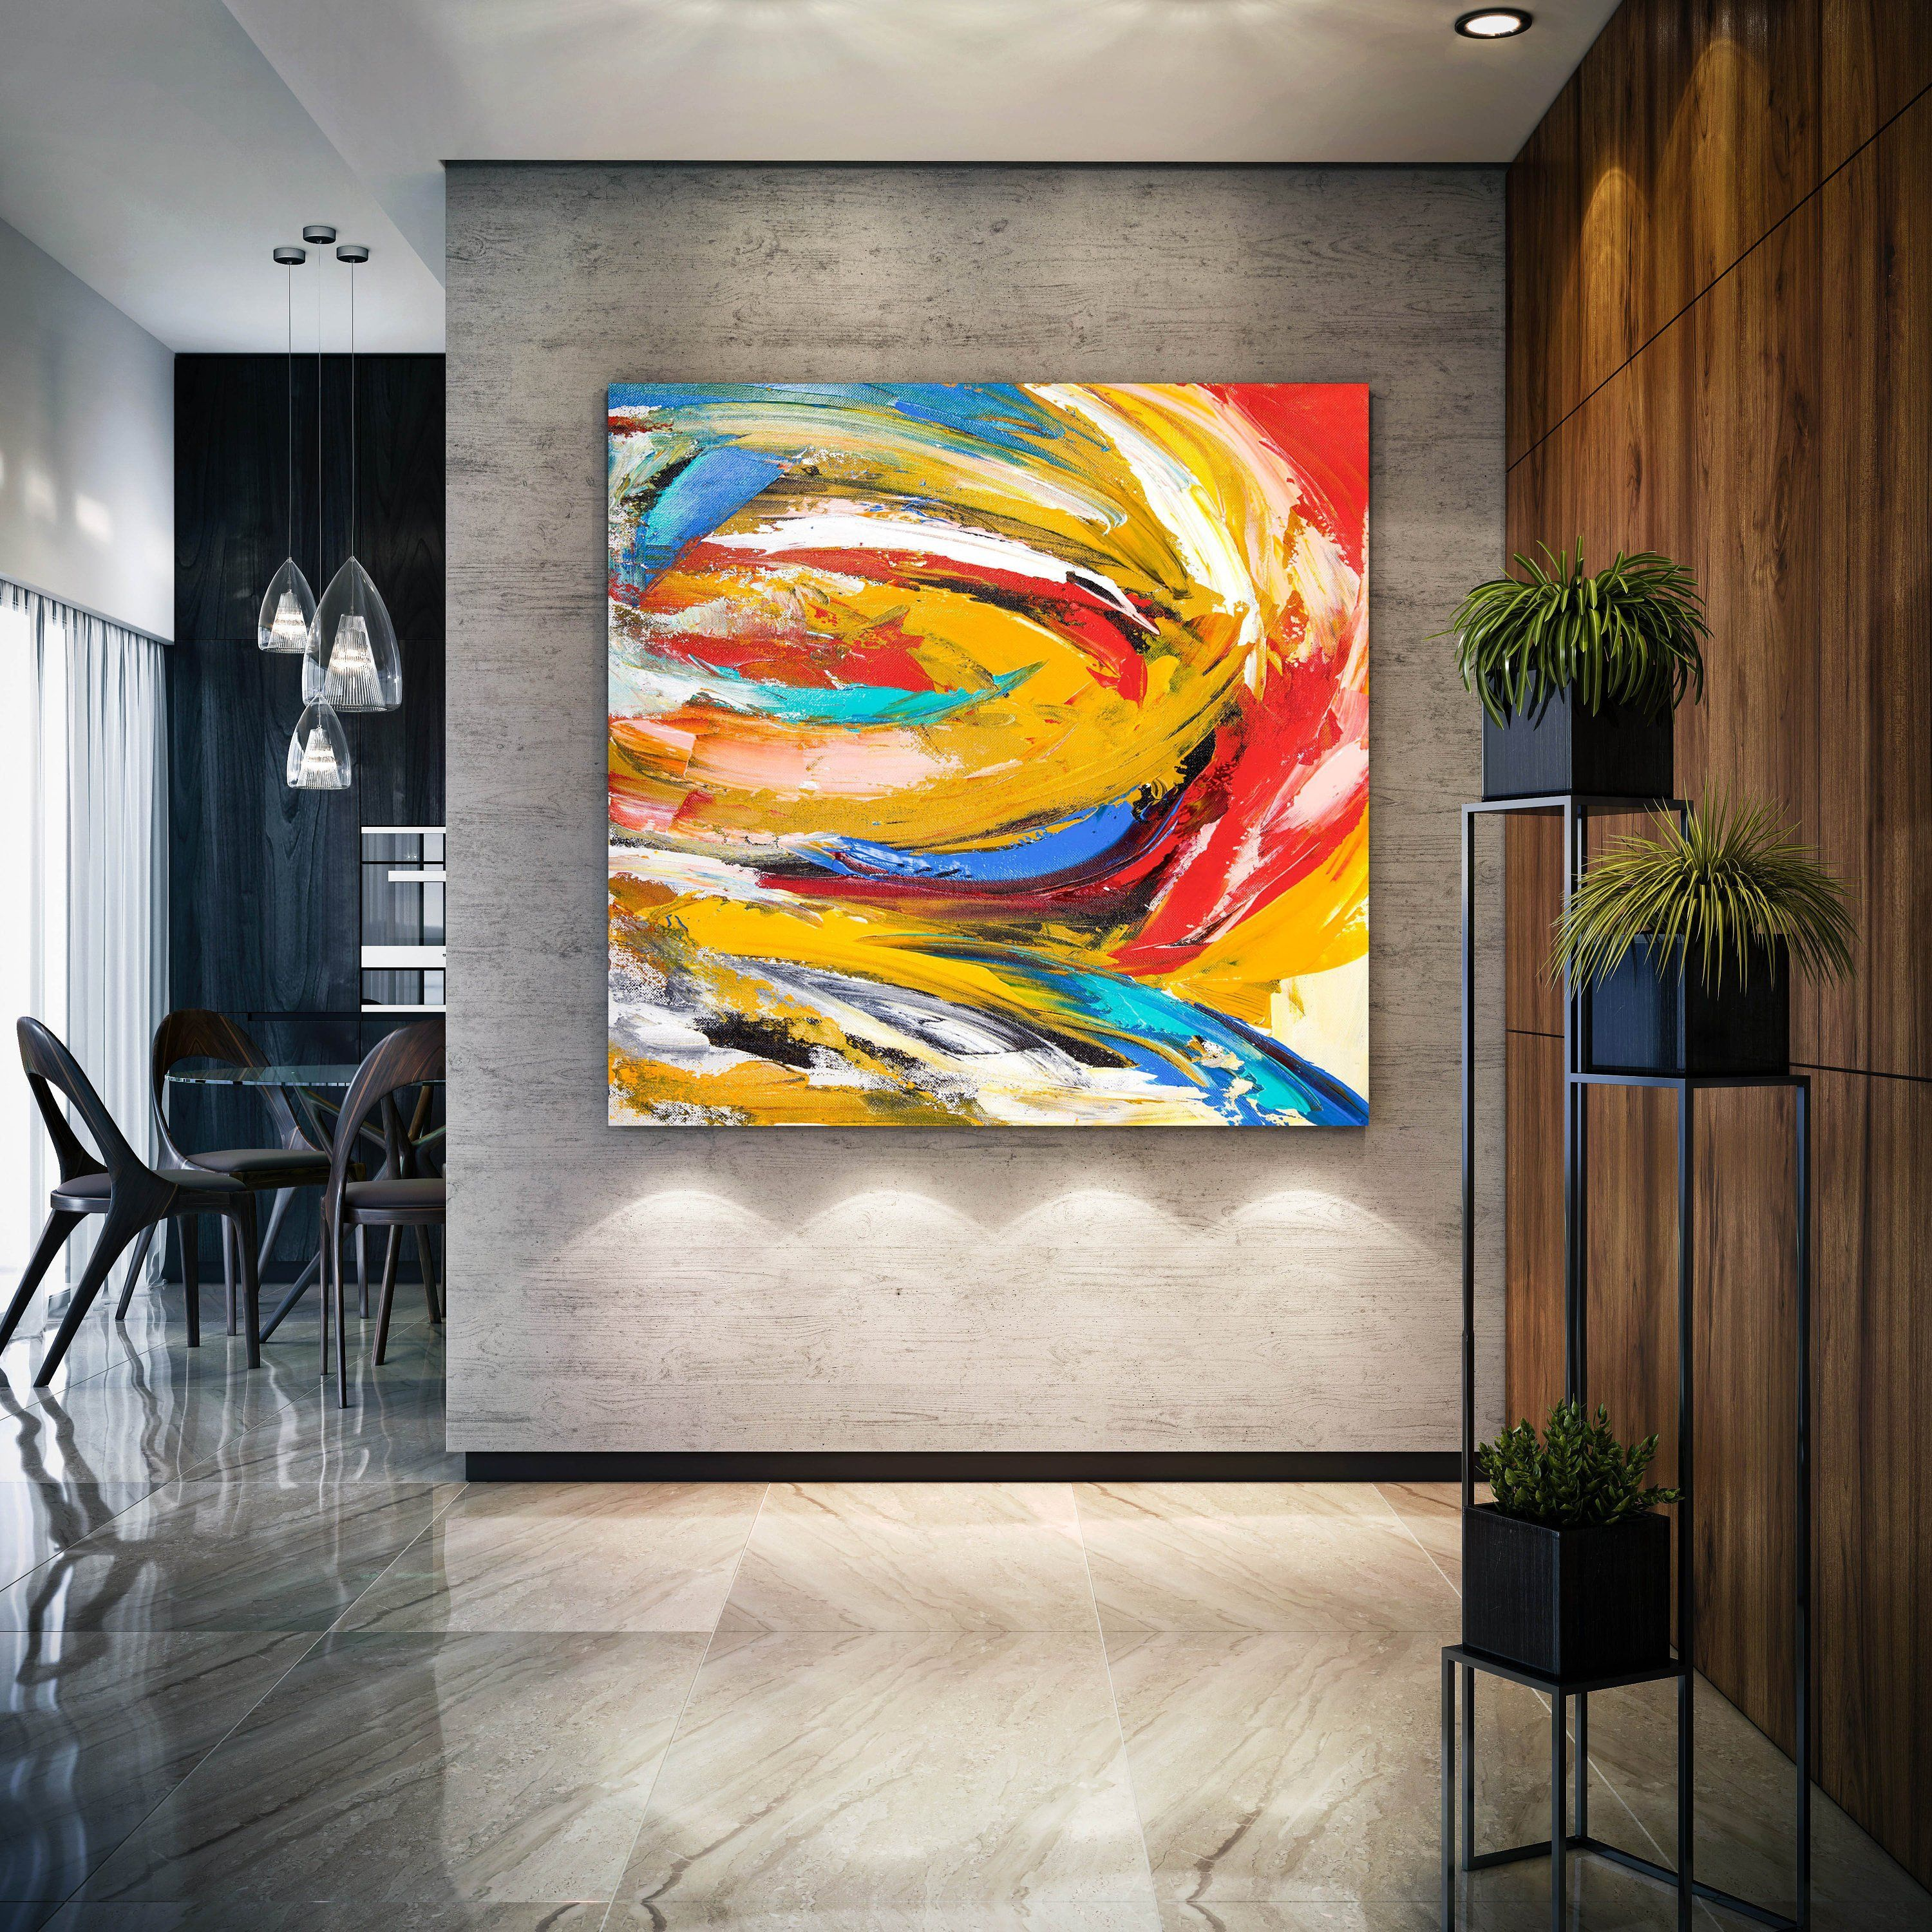 Extra large original abstract painting painting on canvas